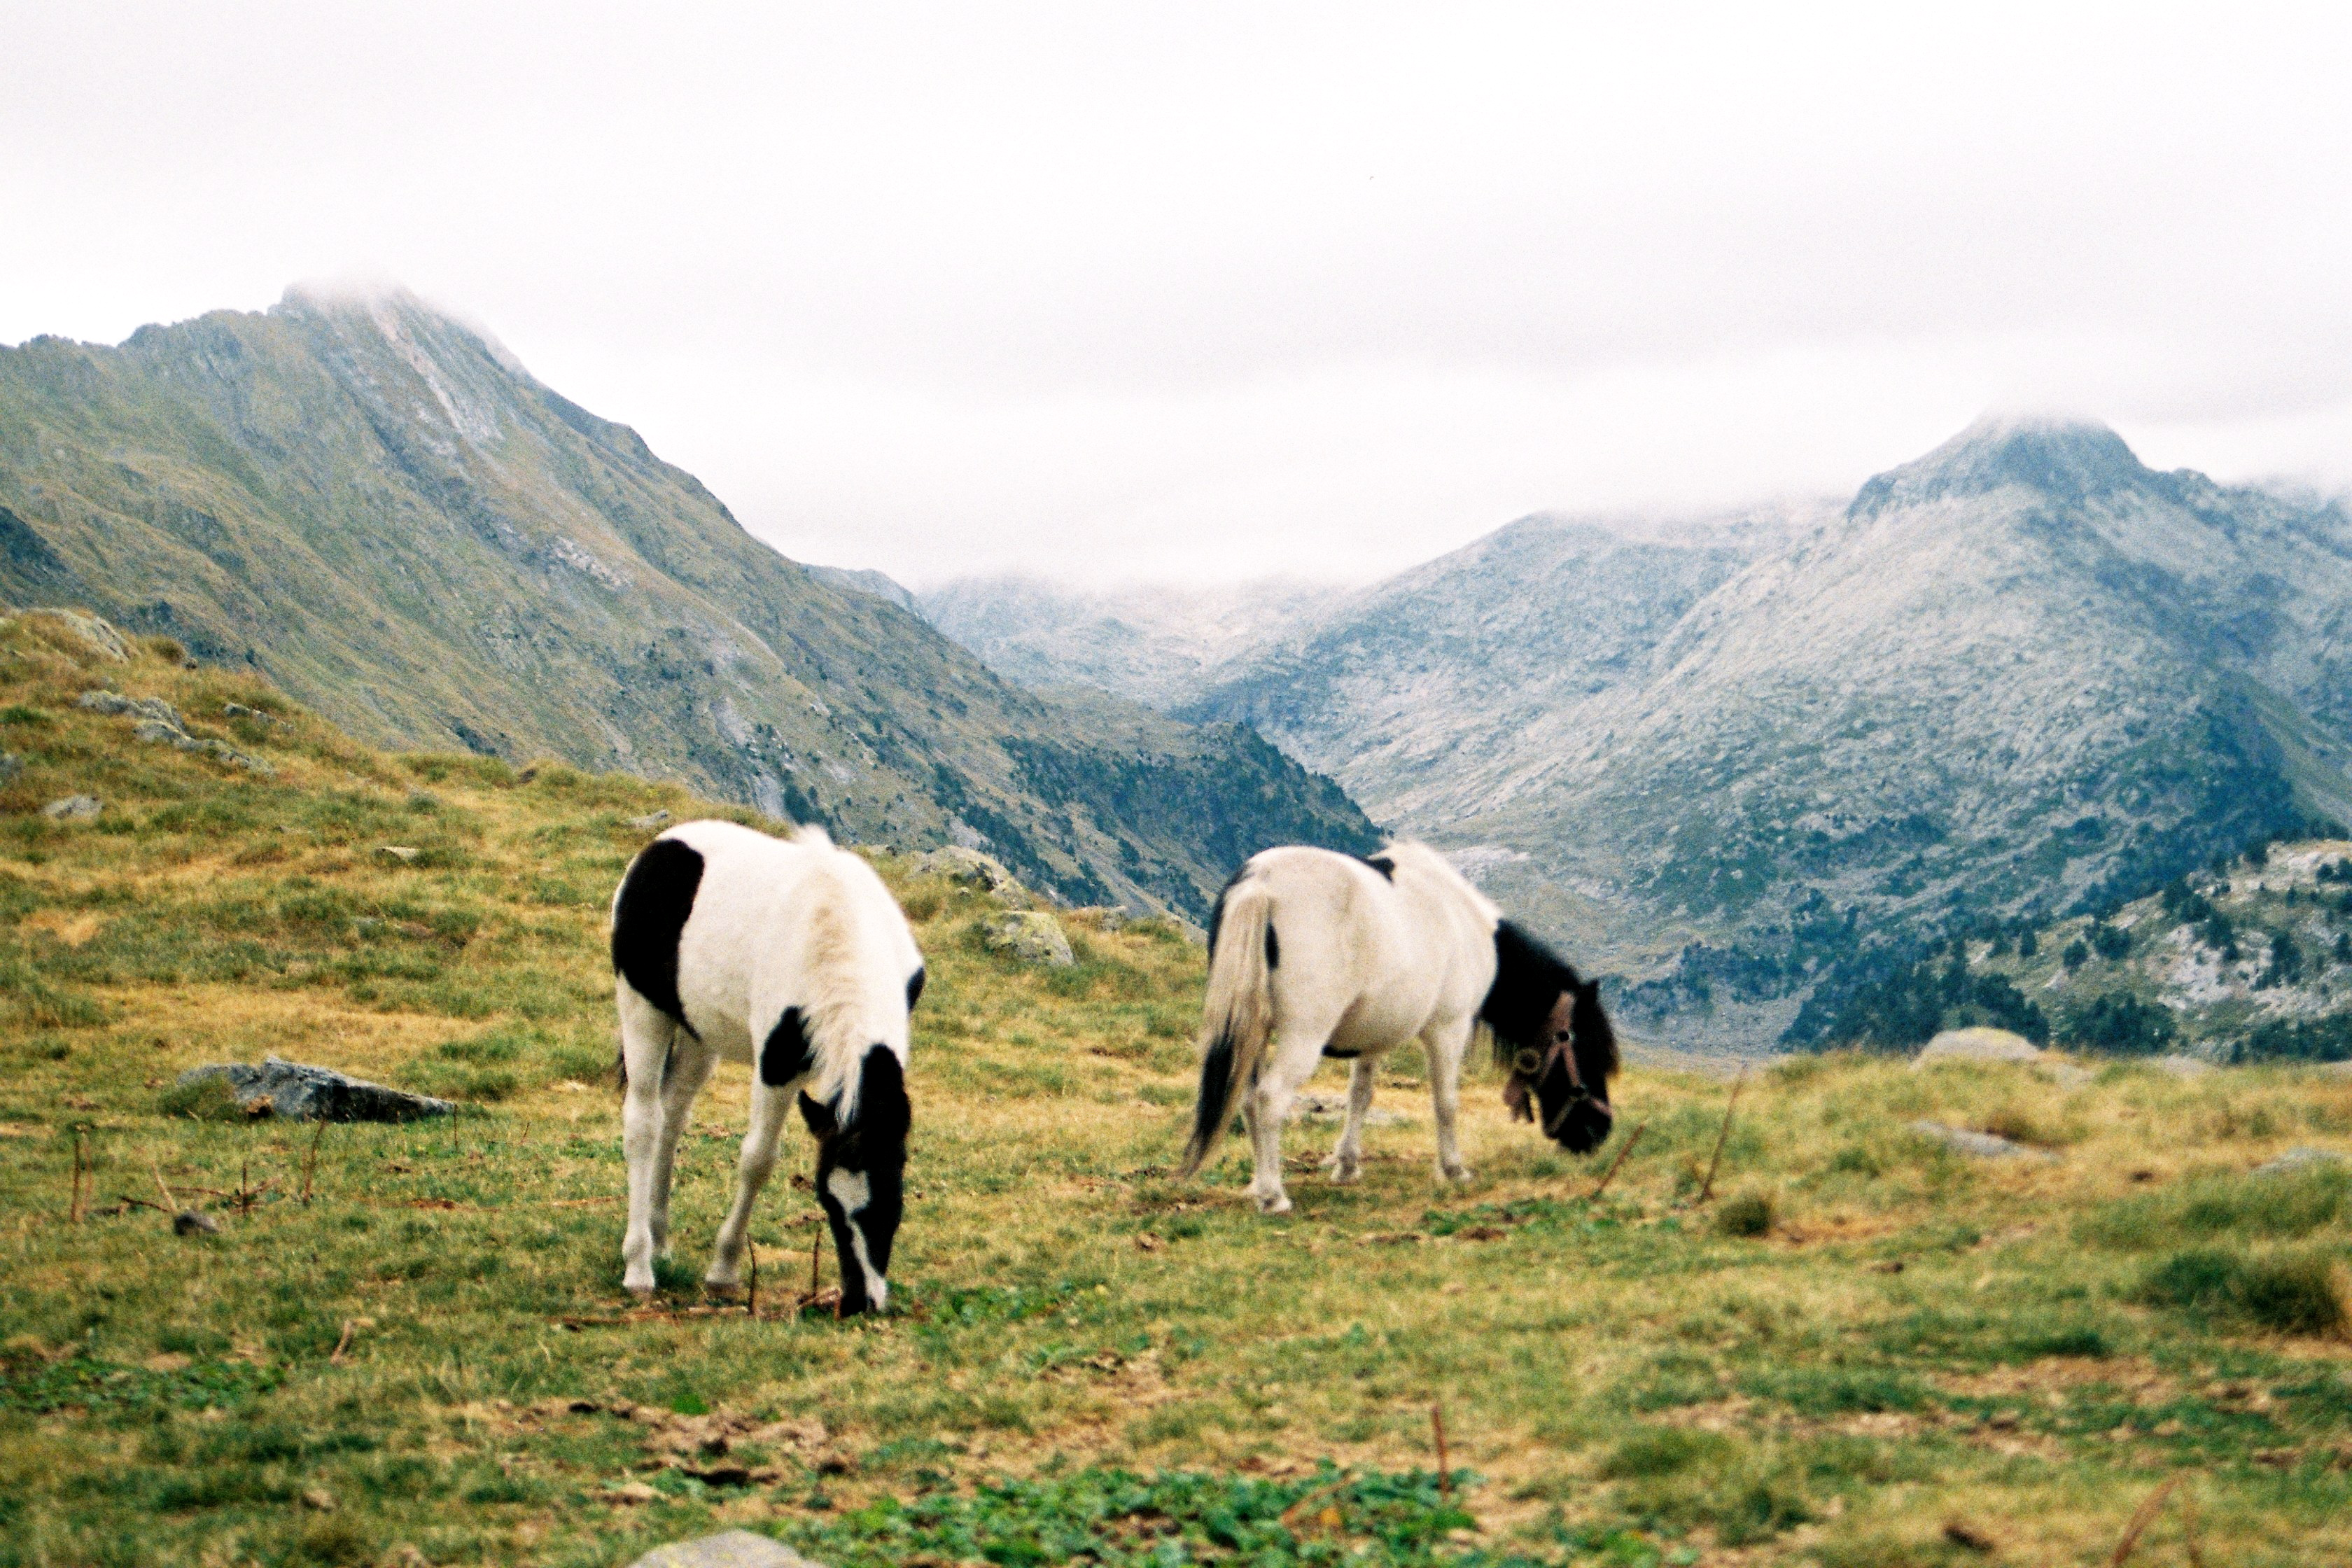 Mountains and wild horses